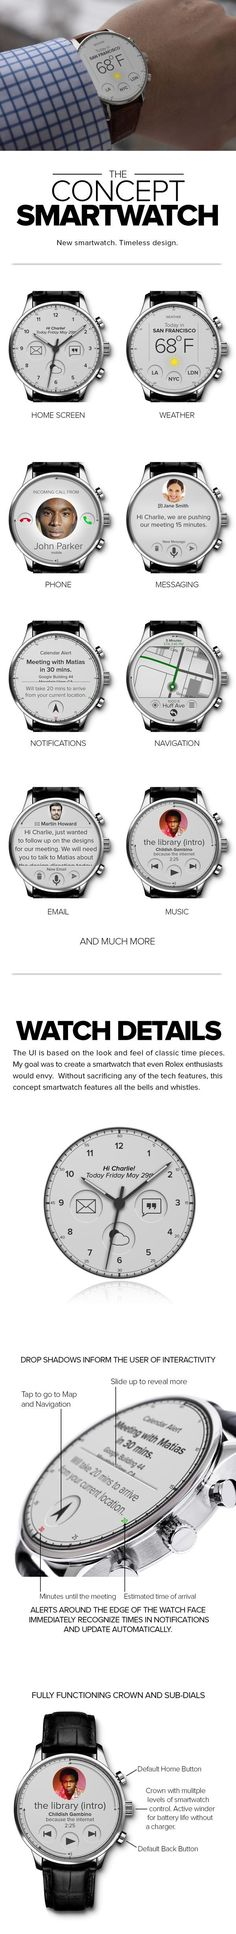 Finally, a smart watch that LOOKS like an actual time piece. Don't know if I would ever want this one either, but at least I can respect this one lol CONCEPT SMARTWATCH by Charlie No #WatchesIlike #Men'sSmartWatch